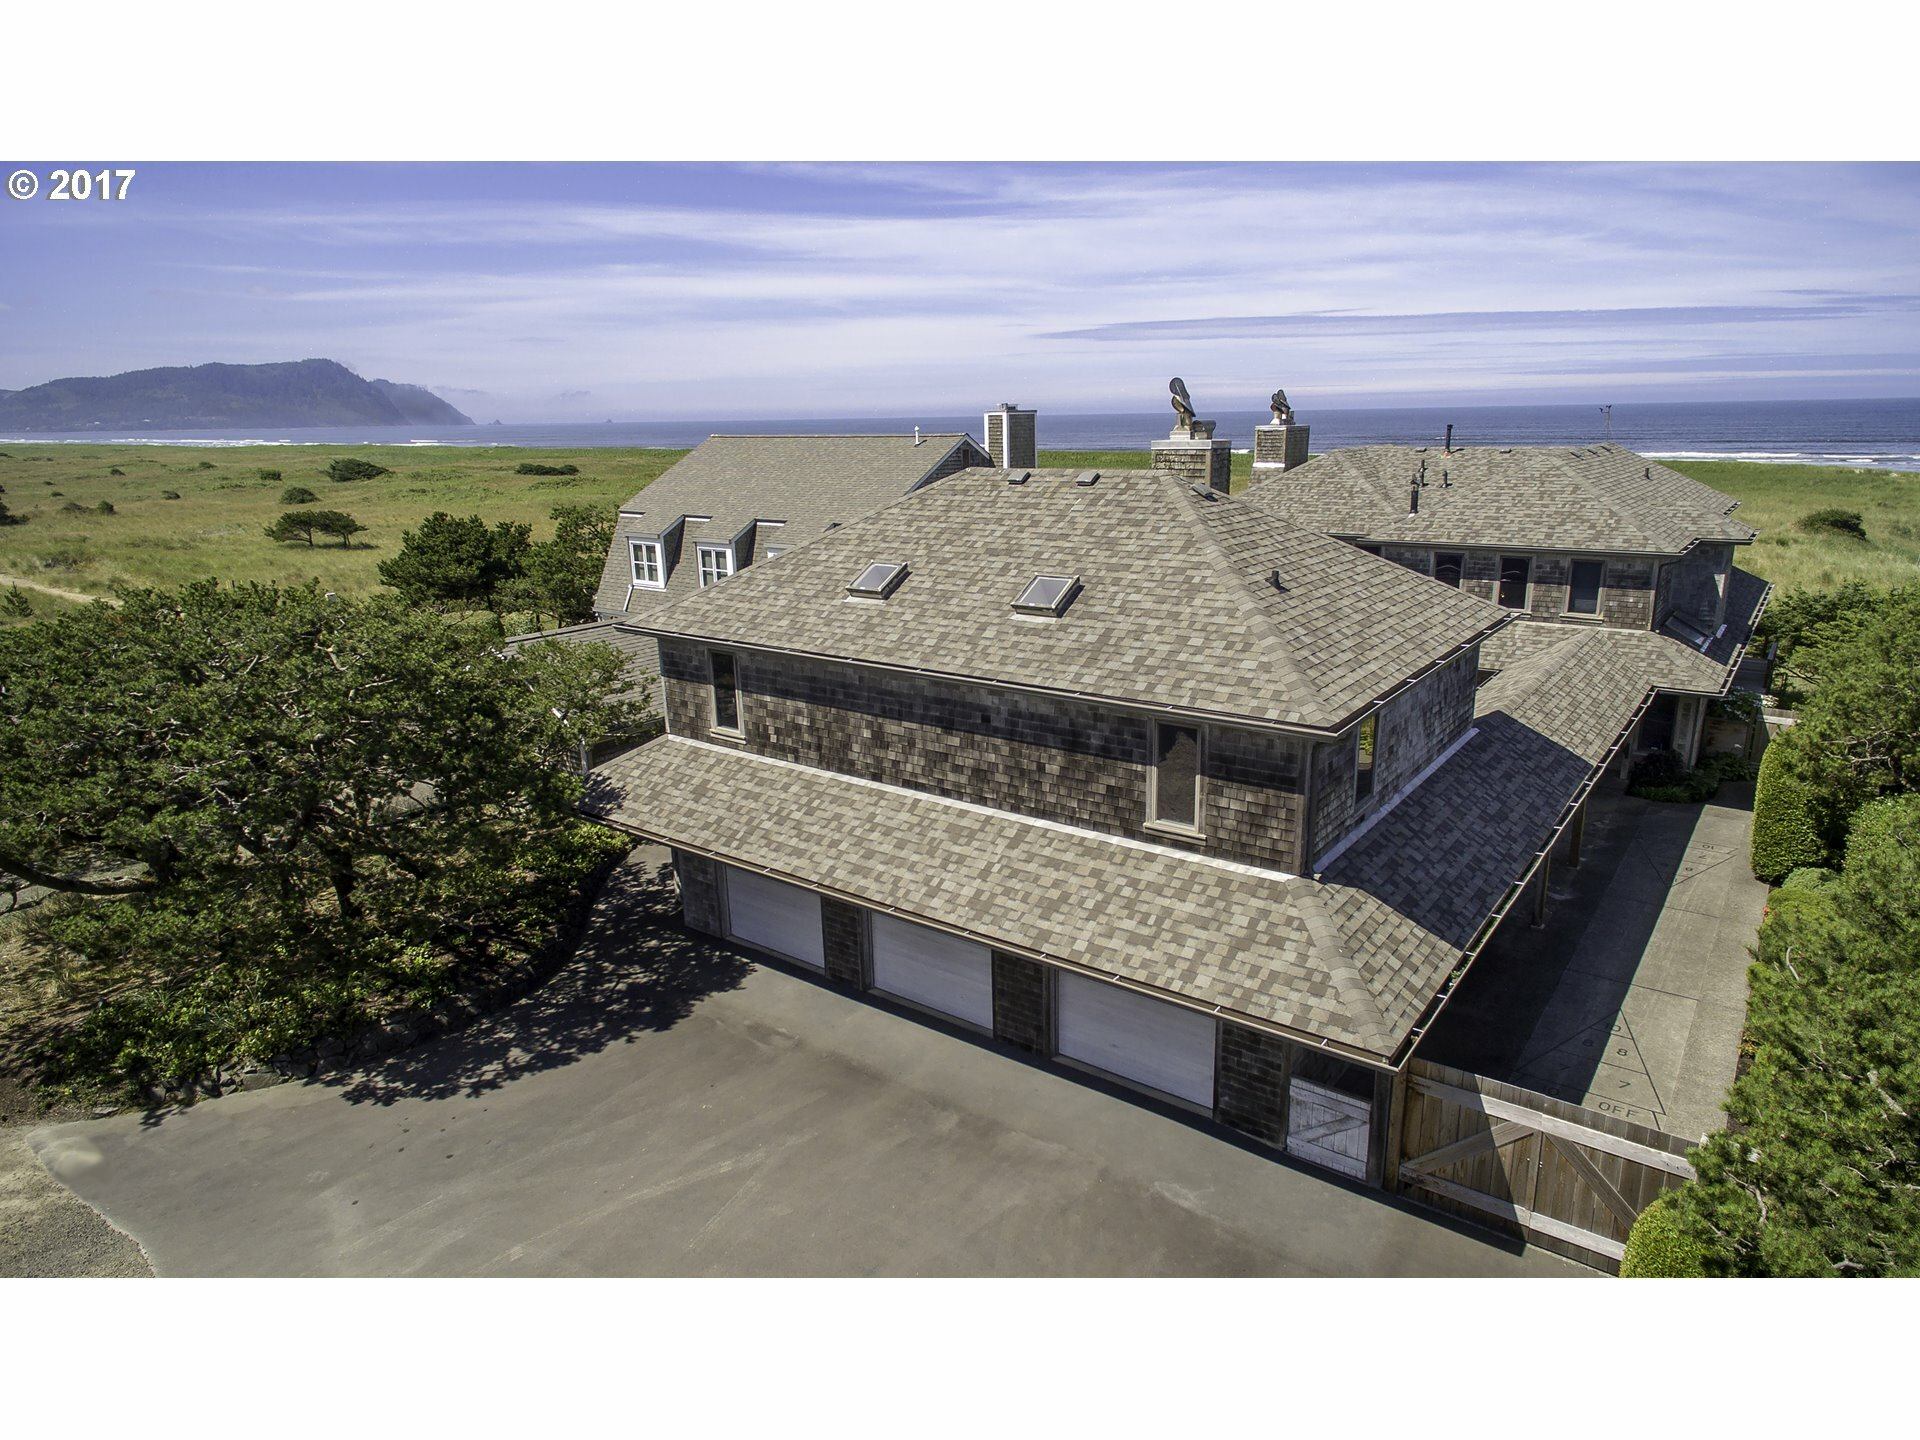 788 Neacoxie Blvd, Gearhart, OR - USA (photo 1)